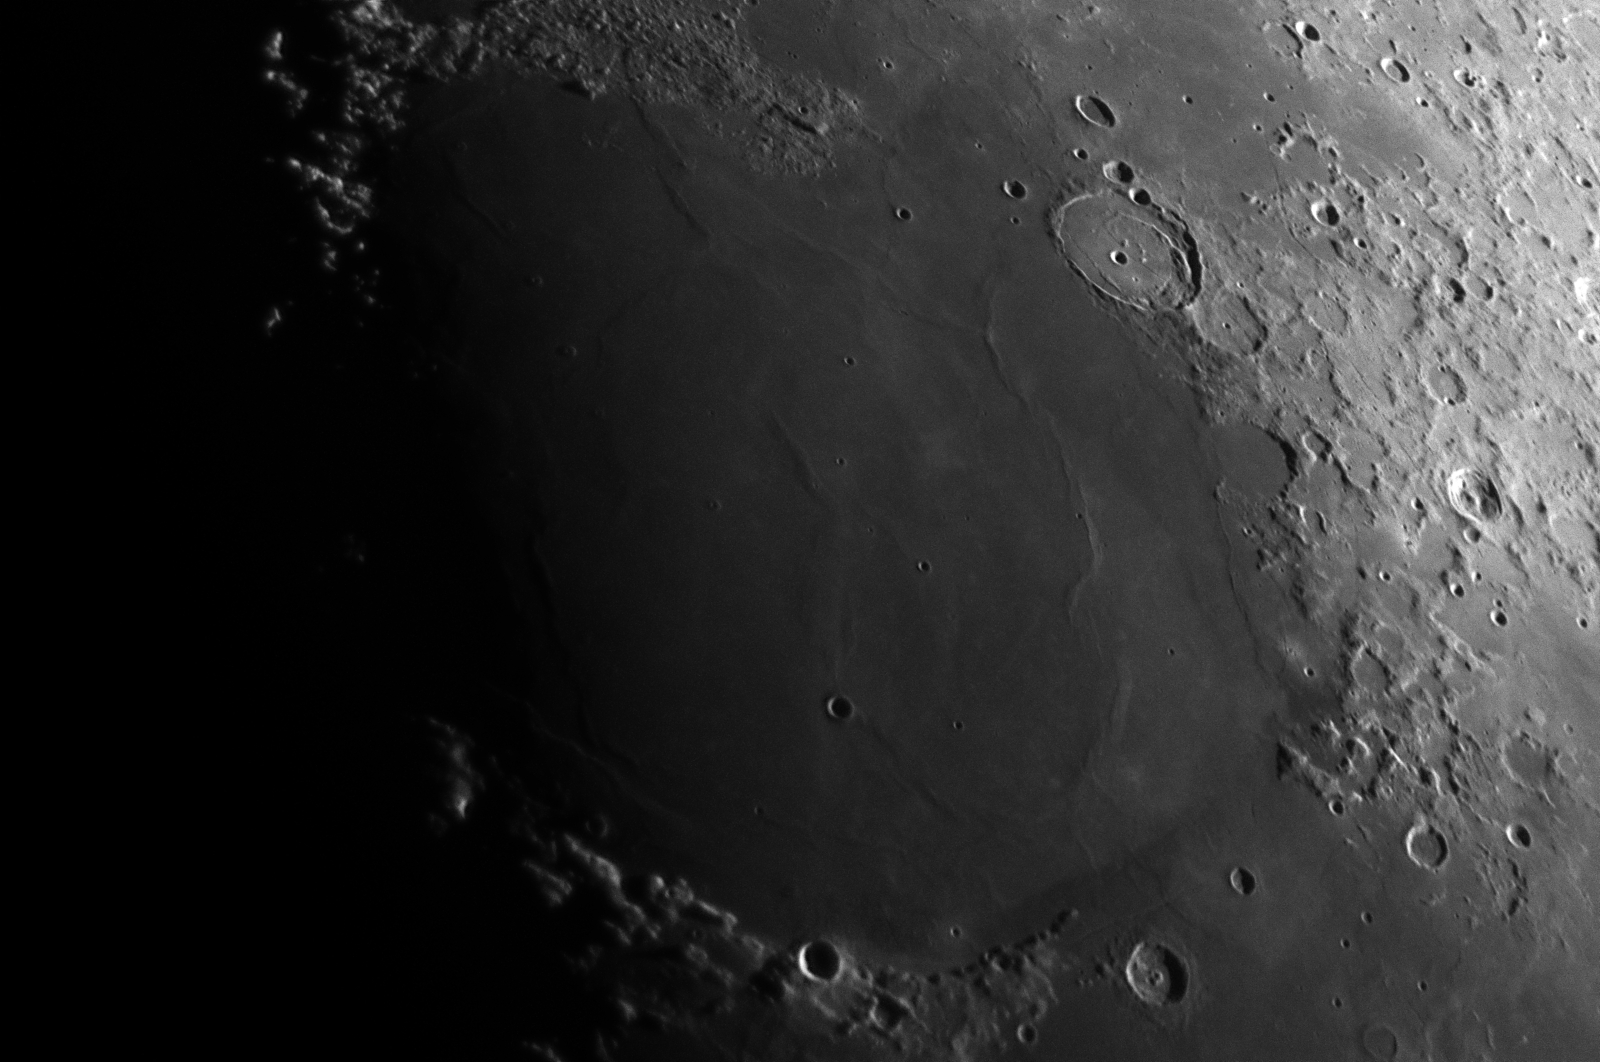 The Moon 18th April 2021